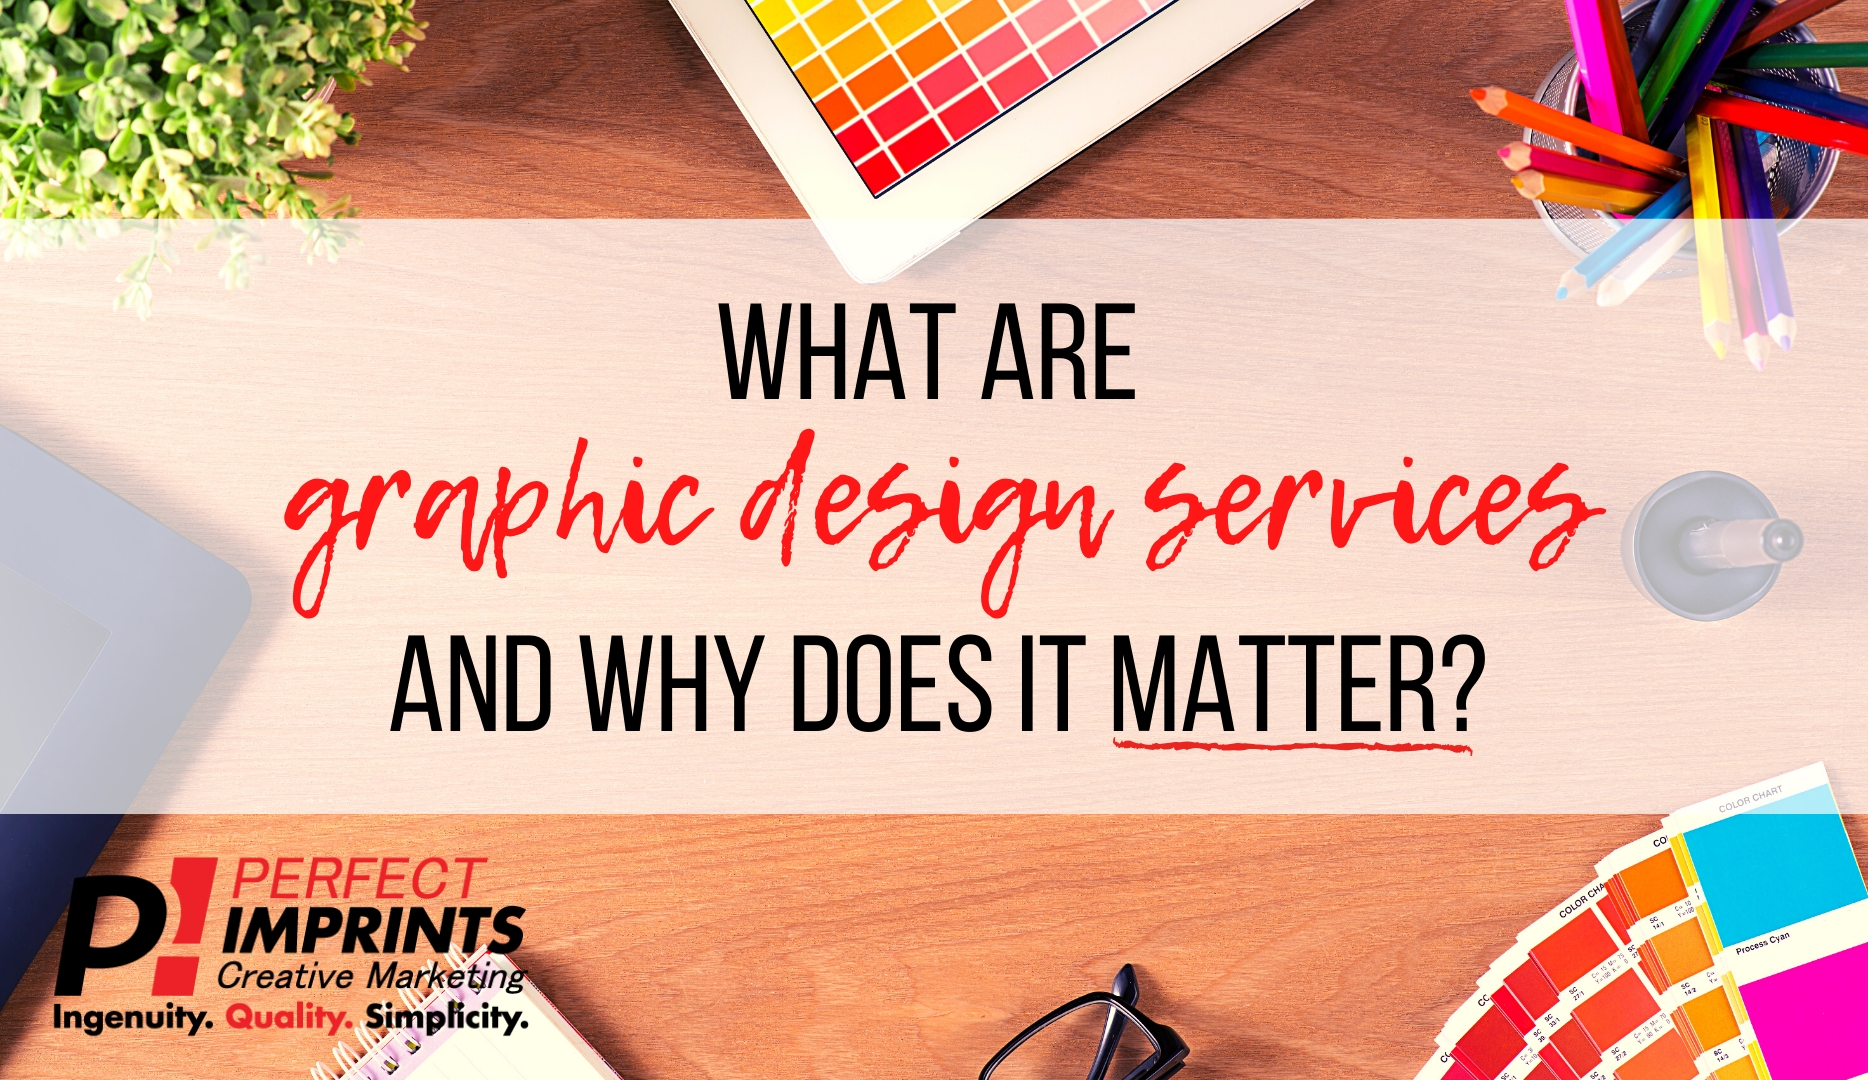 What Are Graphic Design Services And Why Does It Matter?